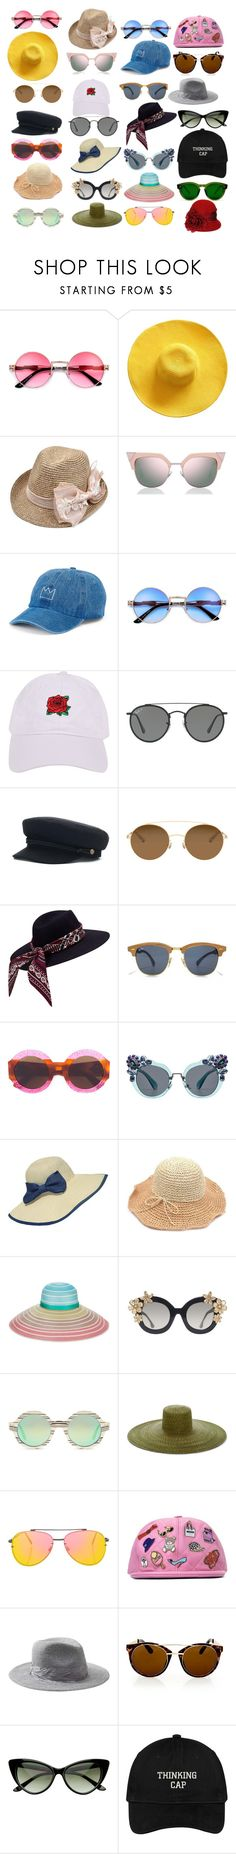 """""""Cool Cuke's"""" by cassandra-beauchamp on Polyvore featuring Fendi, SO, Armitage Avenue, Ray-Ban, Mykita, Gucci, Miu Miu, WithChic, Missoni and Alice + Olivia"""